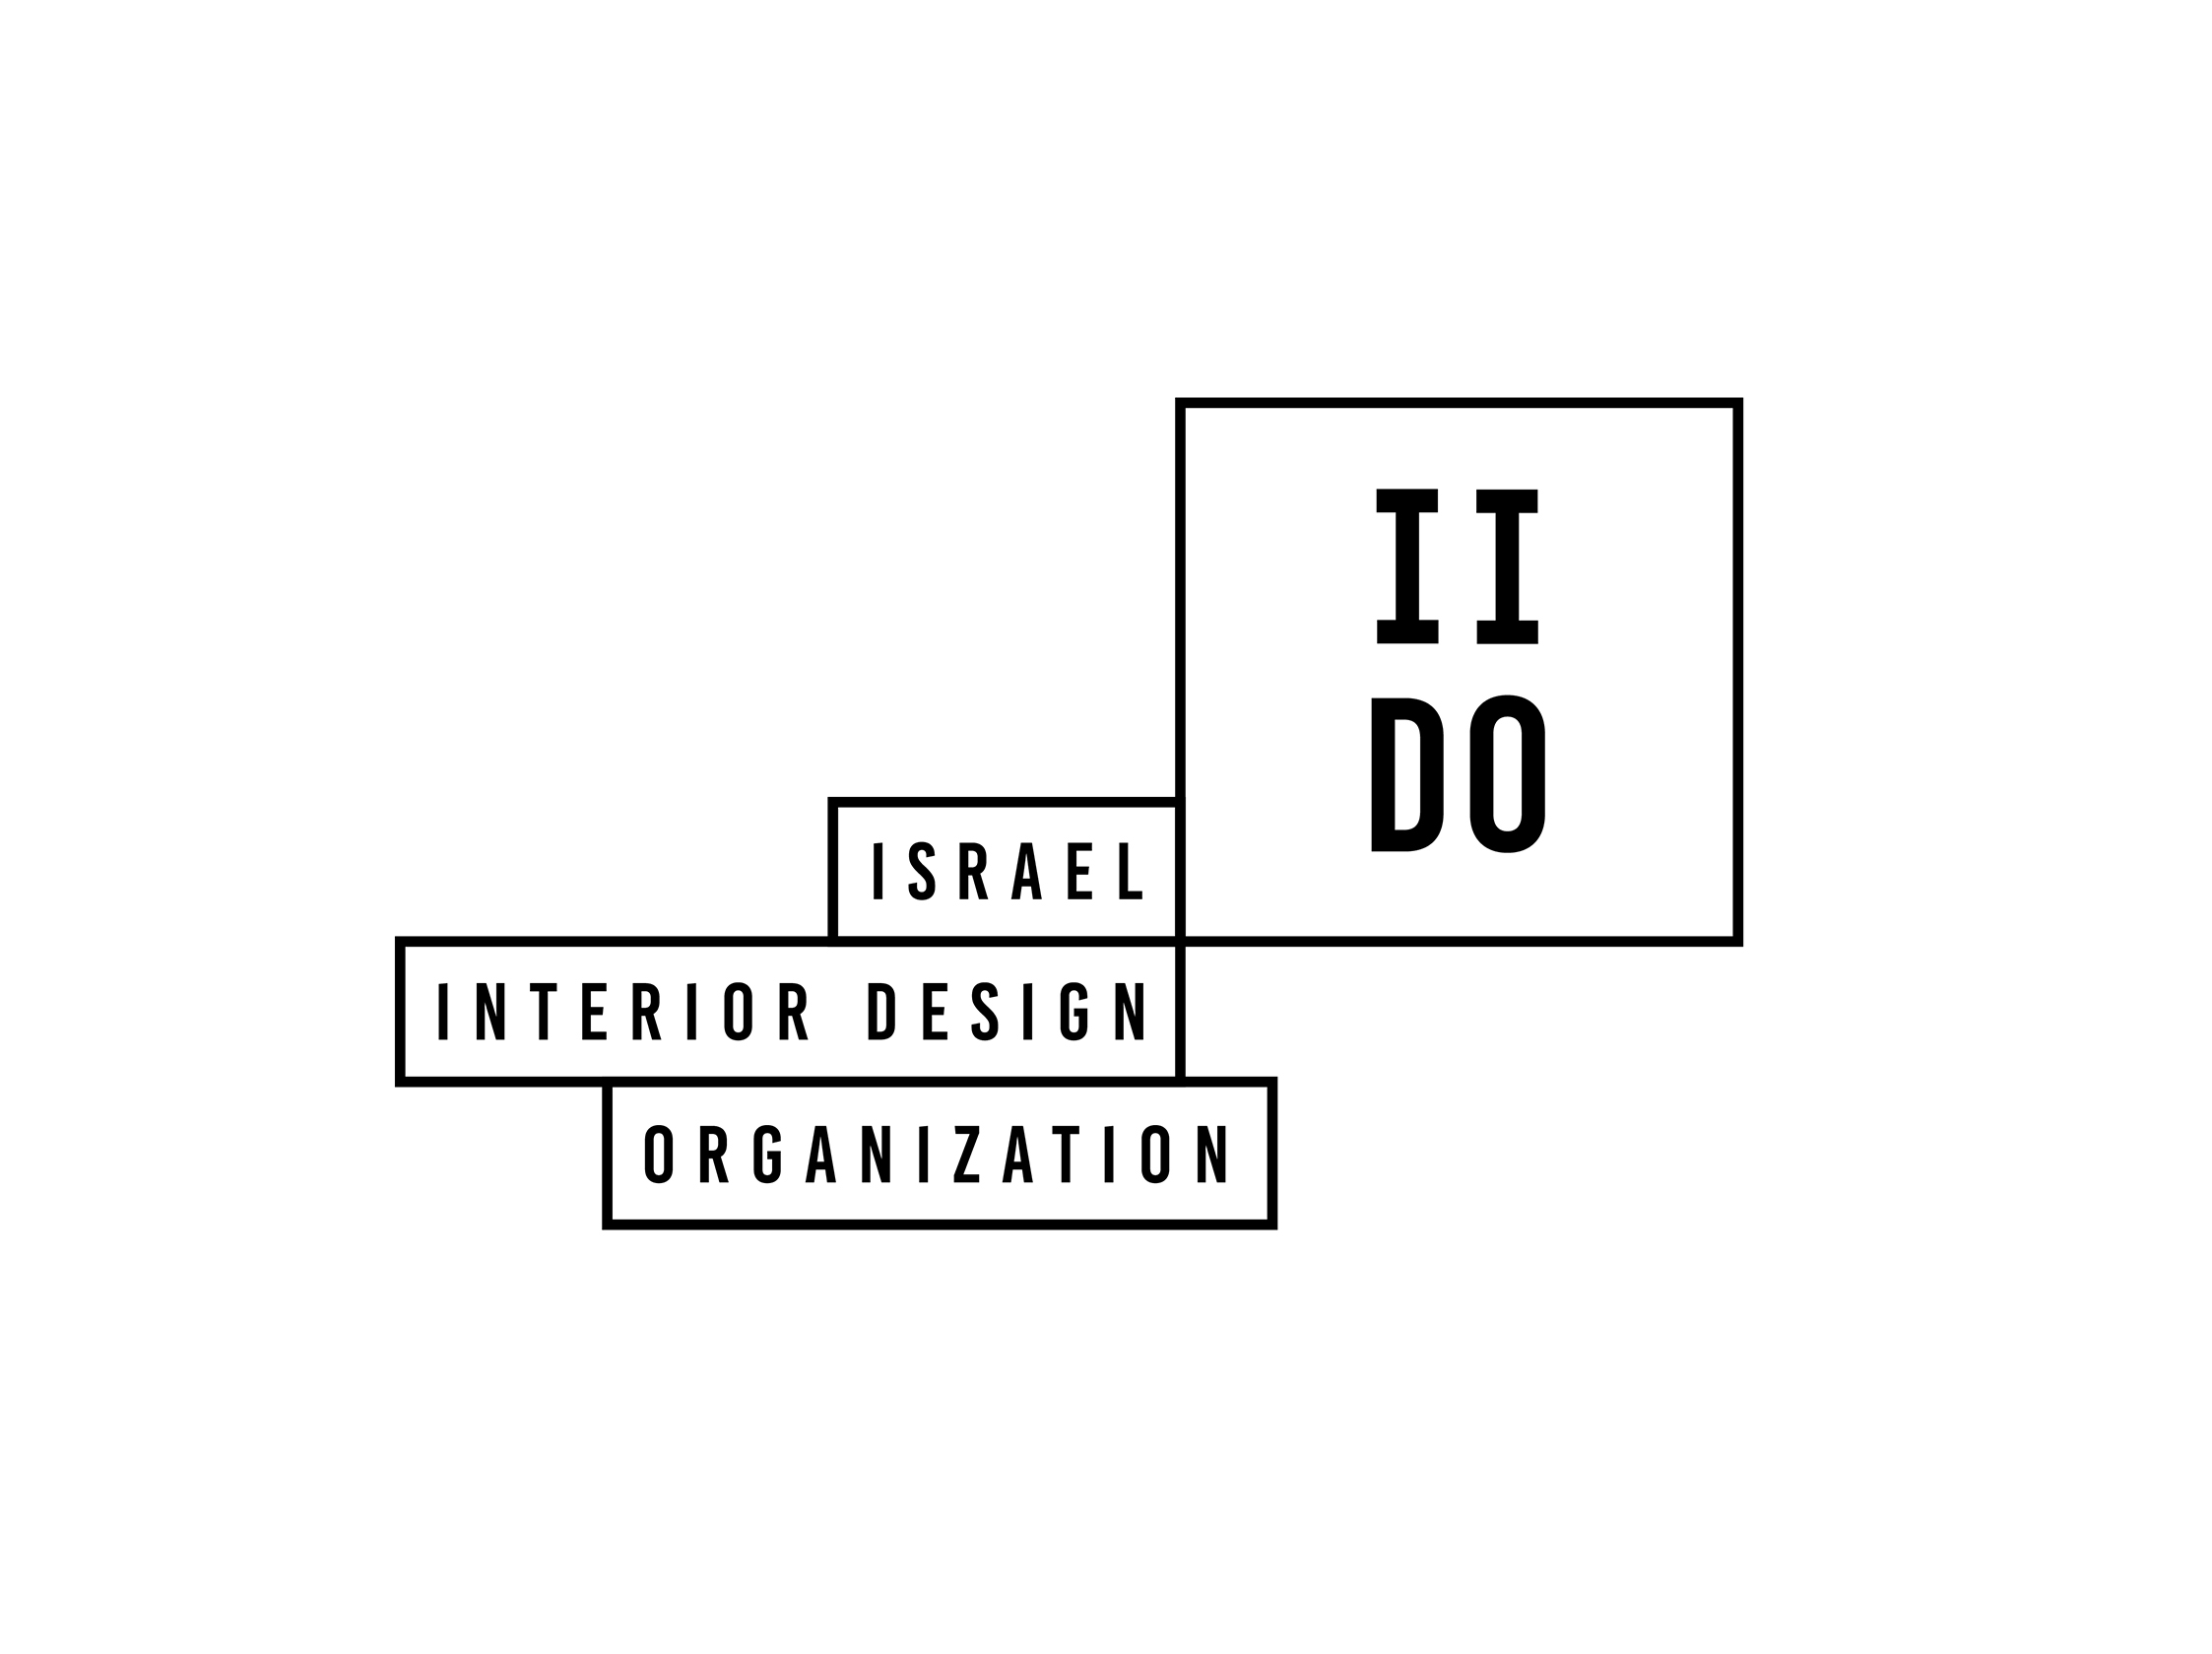 logo-Israel interior design organization